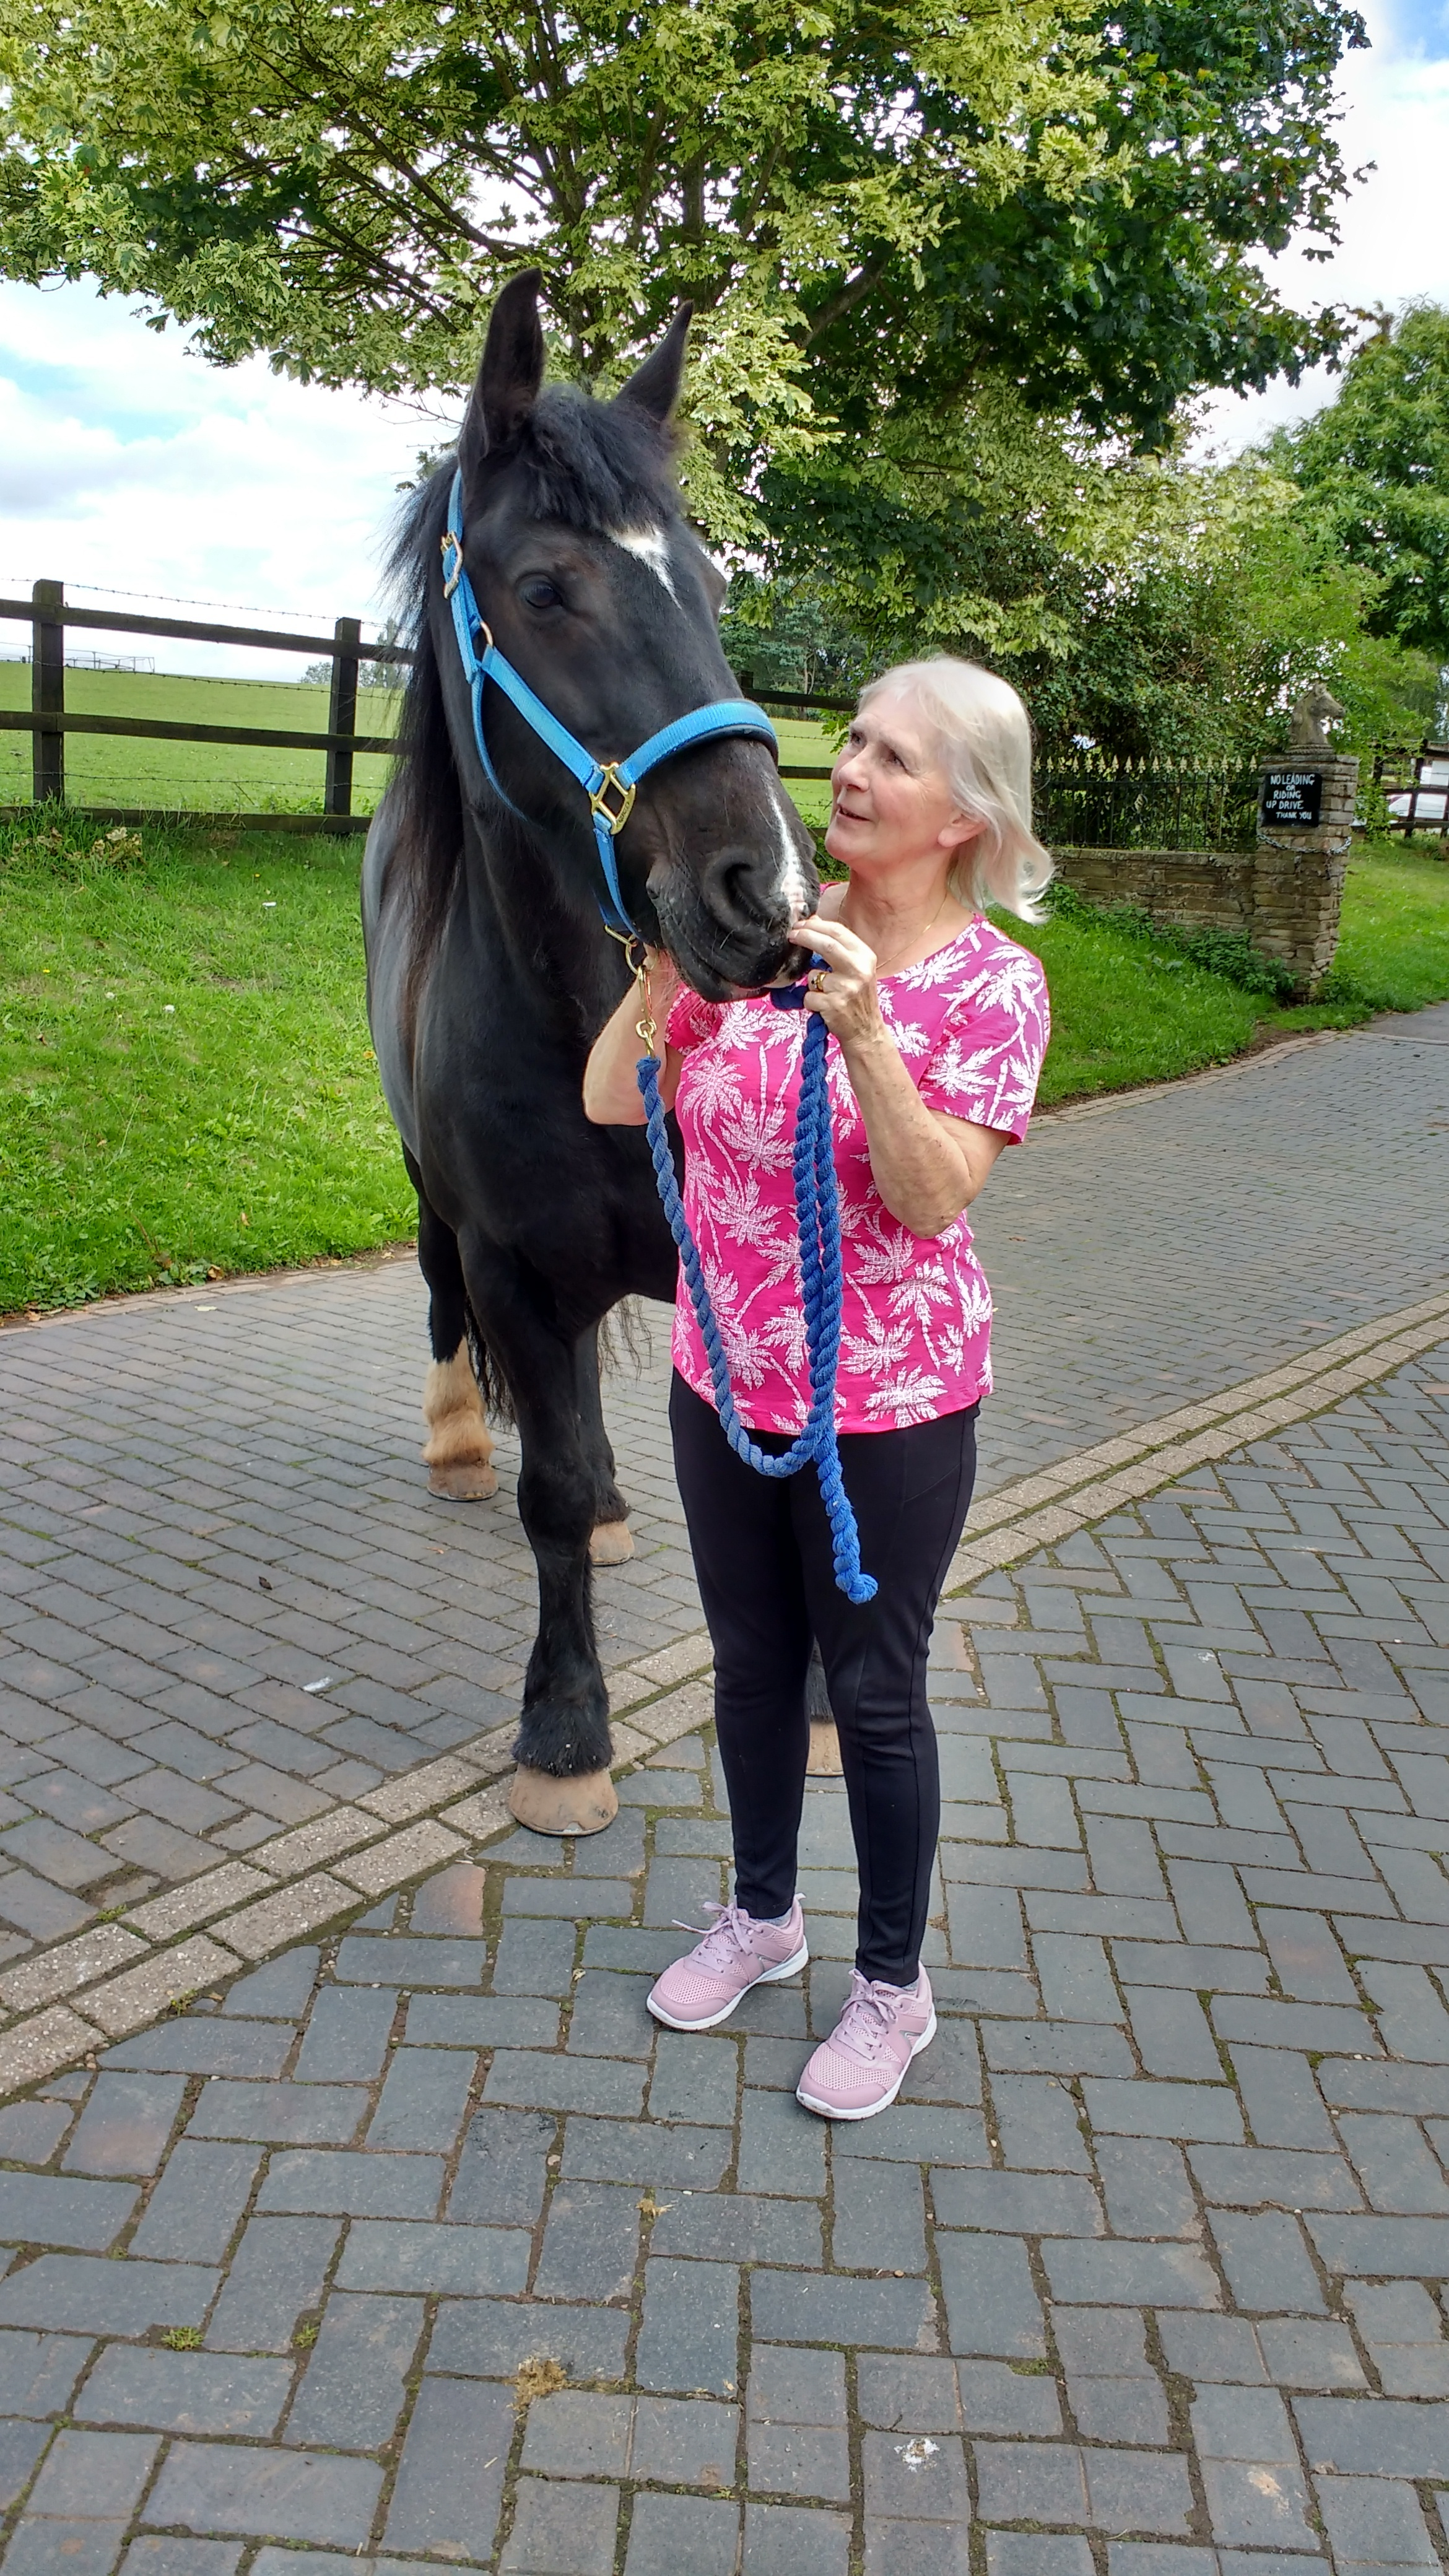 Jean Hayward, pictured with her horse Blackie, has penned her first novel.